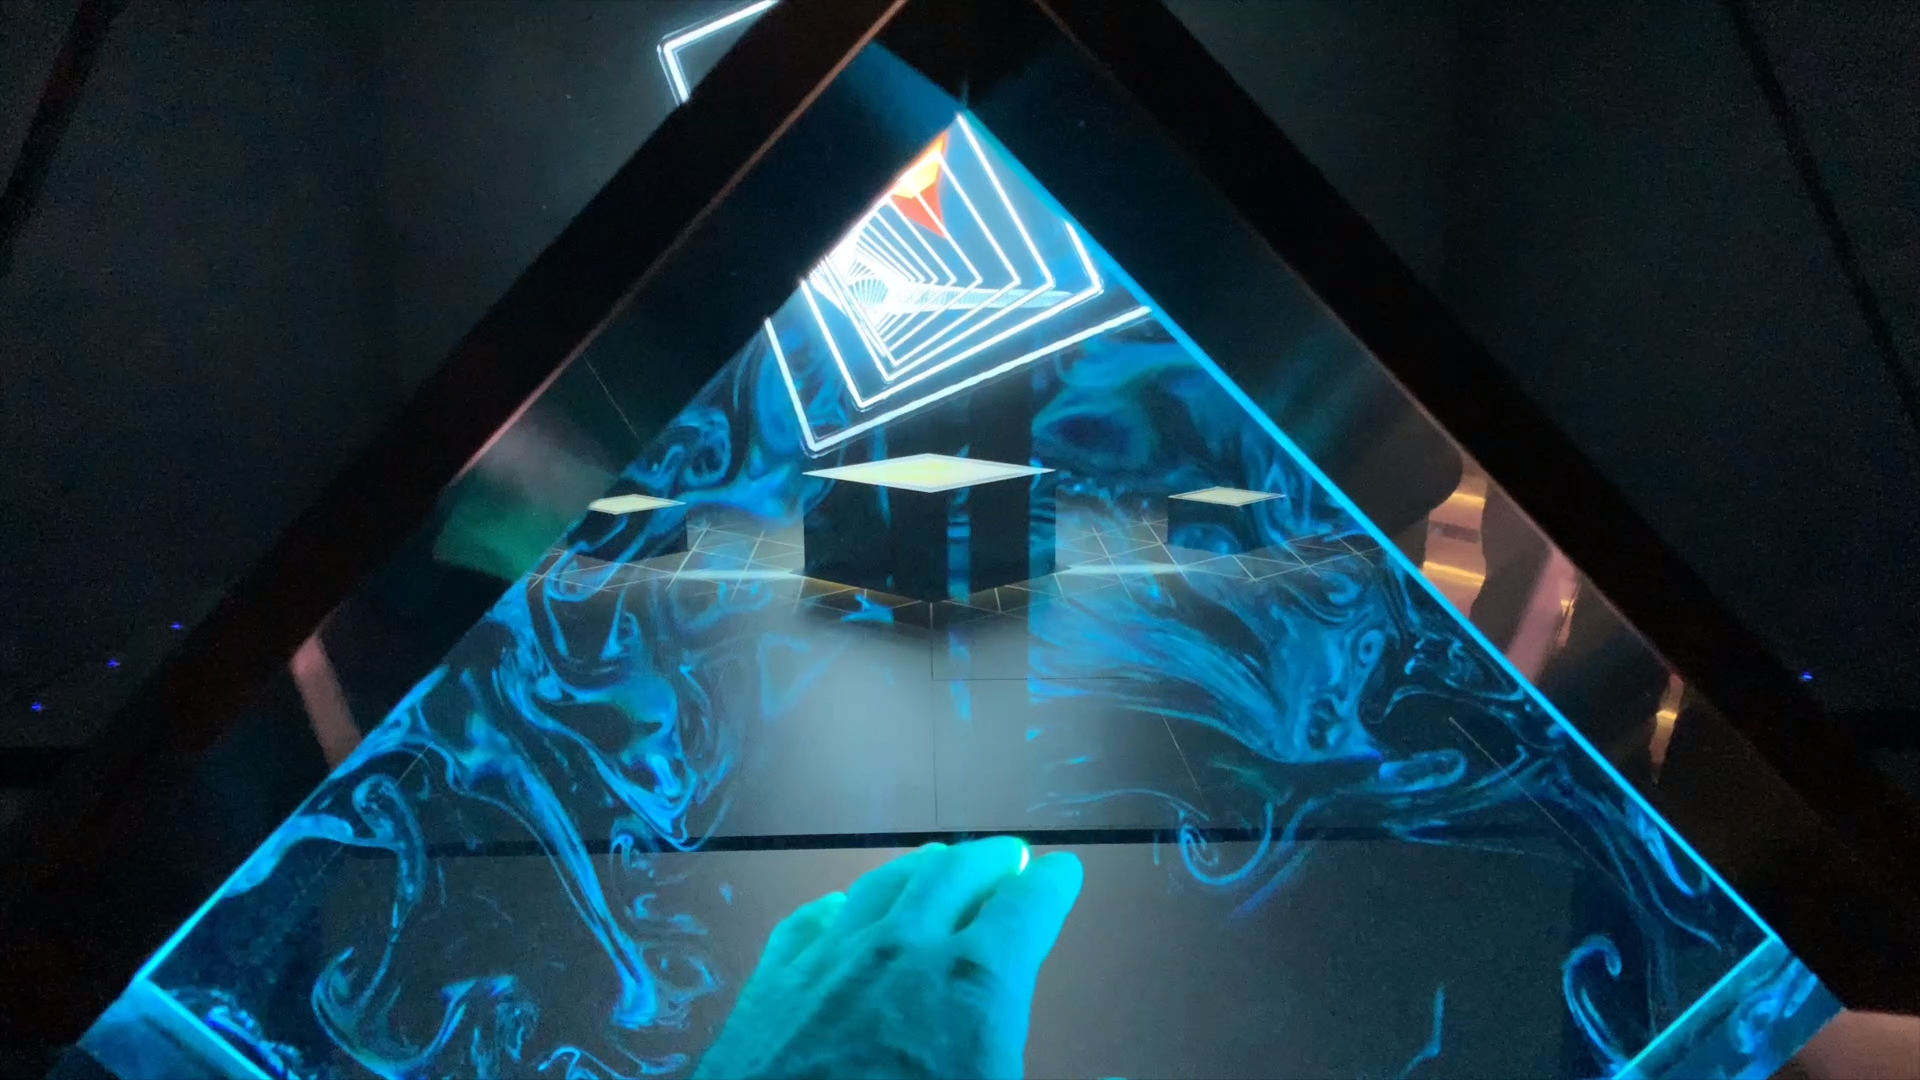 A diamond-shaped portal standing in front of a holographic theater allows people to browse contents by natural hand's movements. By pointing with fingers, the users can browse different contents #holo #hologram #interaction #interactive #installation #gestures #design #exhibition #mesmerizing #dmx #effects - Pavillion Design, Content Experience and Construction: Simmetrico S.r.l. General Contractor and Surveyor: Illogic S.r.l.